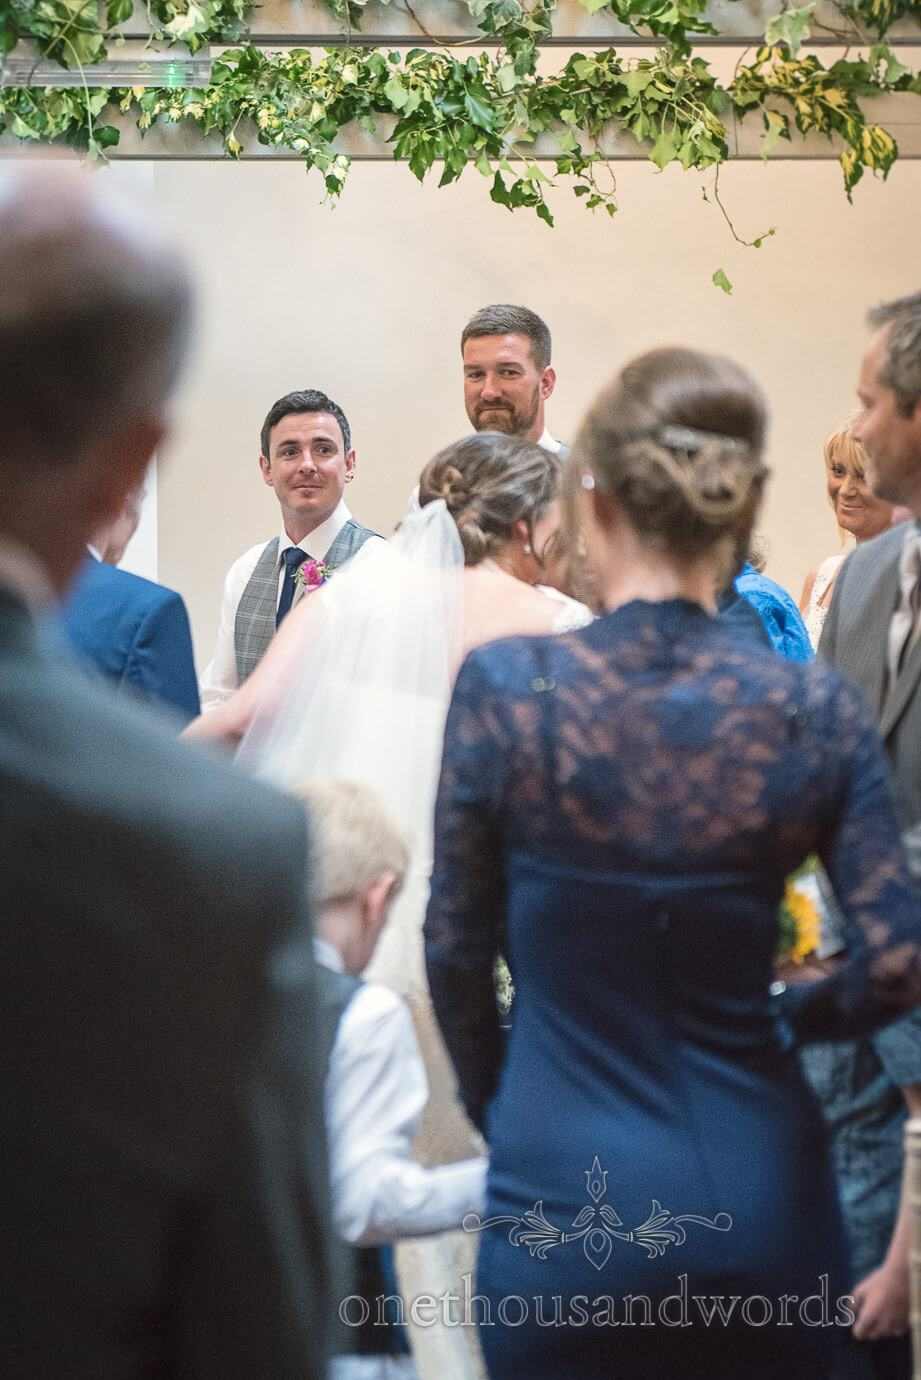 Groom's first look at bride walking down aisle at The Old Vicarage Wedding ceremony